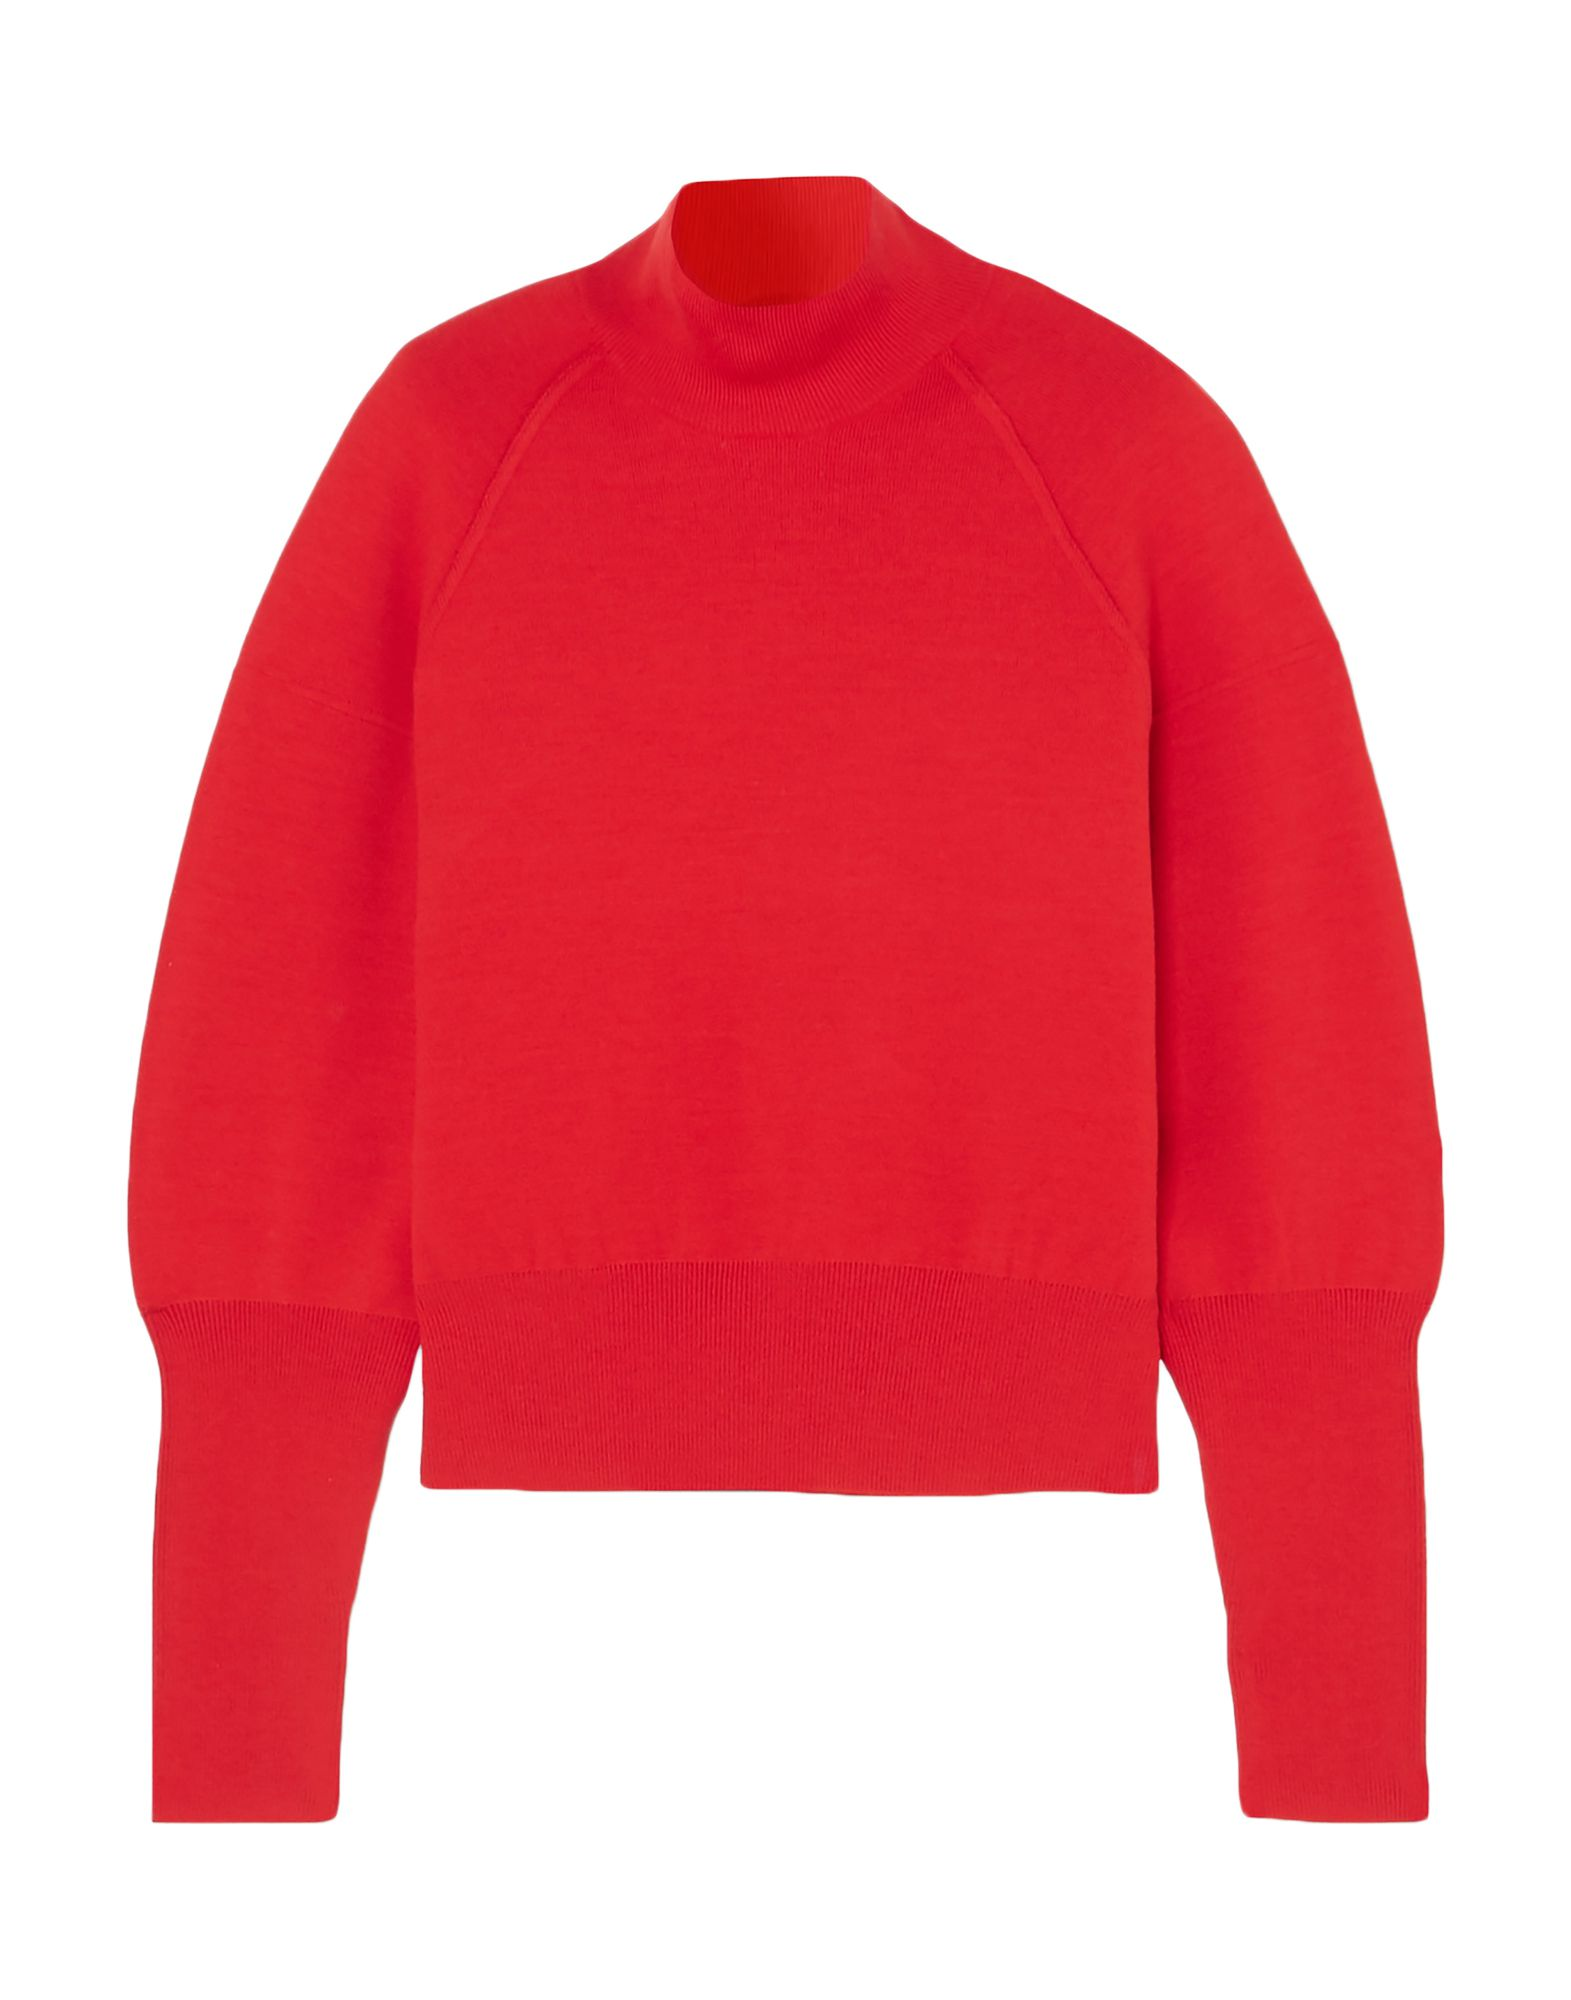 ACNE STUDIOS Turtlenecks - Item 12504620